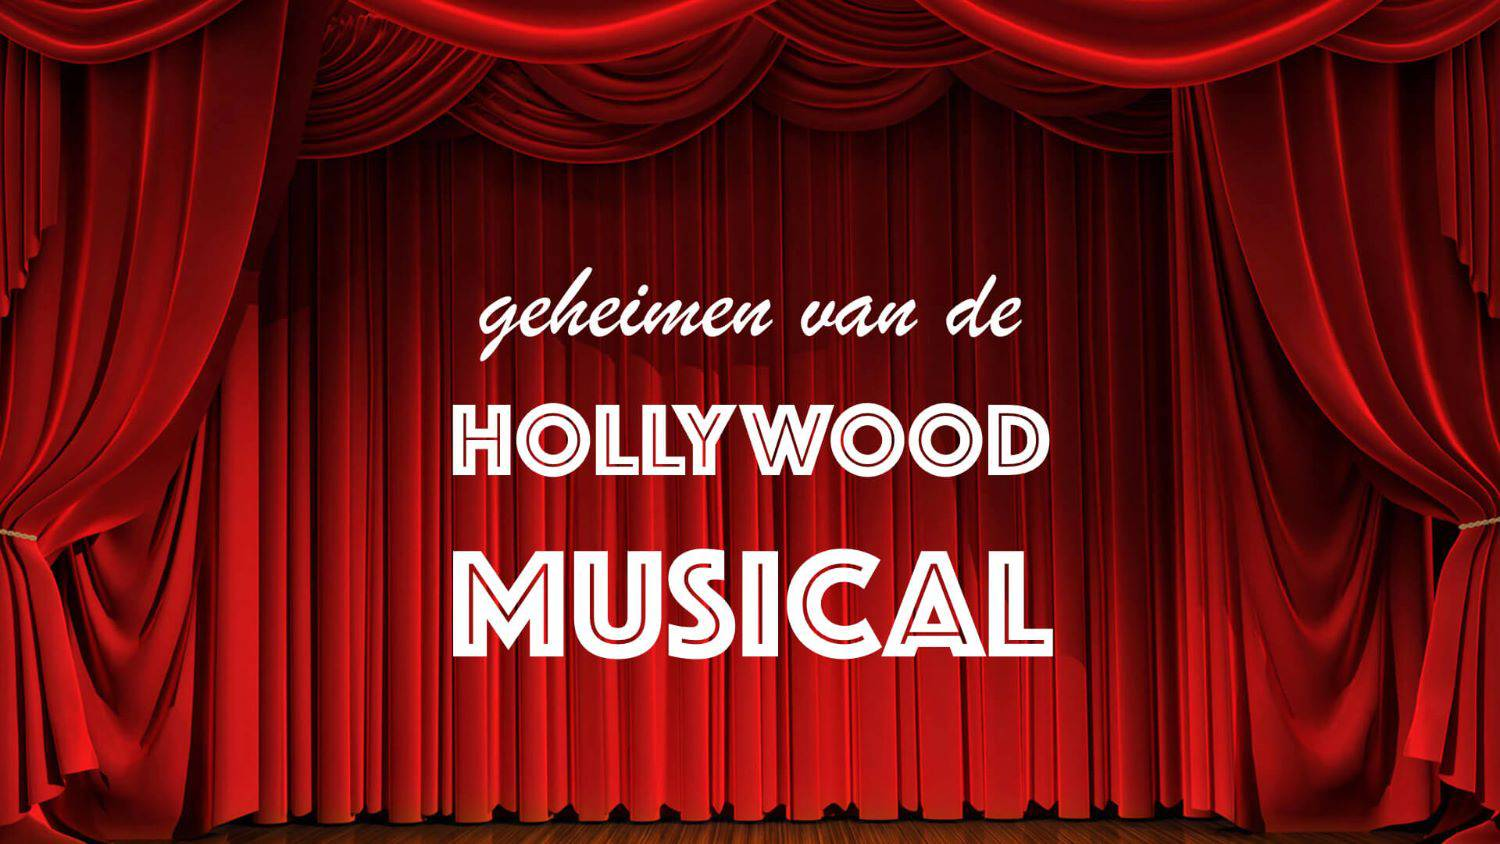 De geheimen van de Hollywood Musicals.